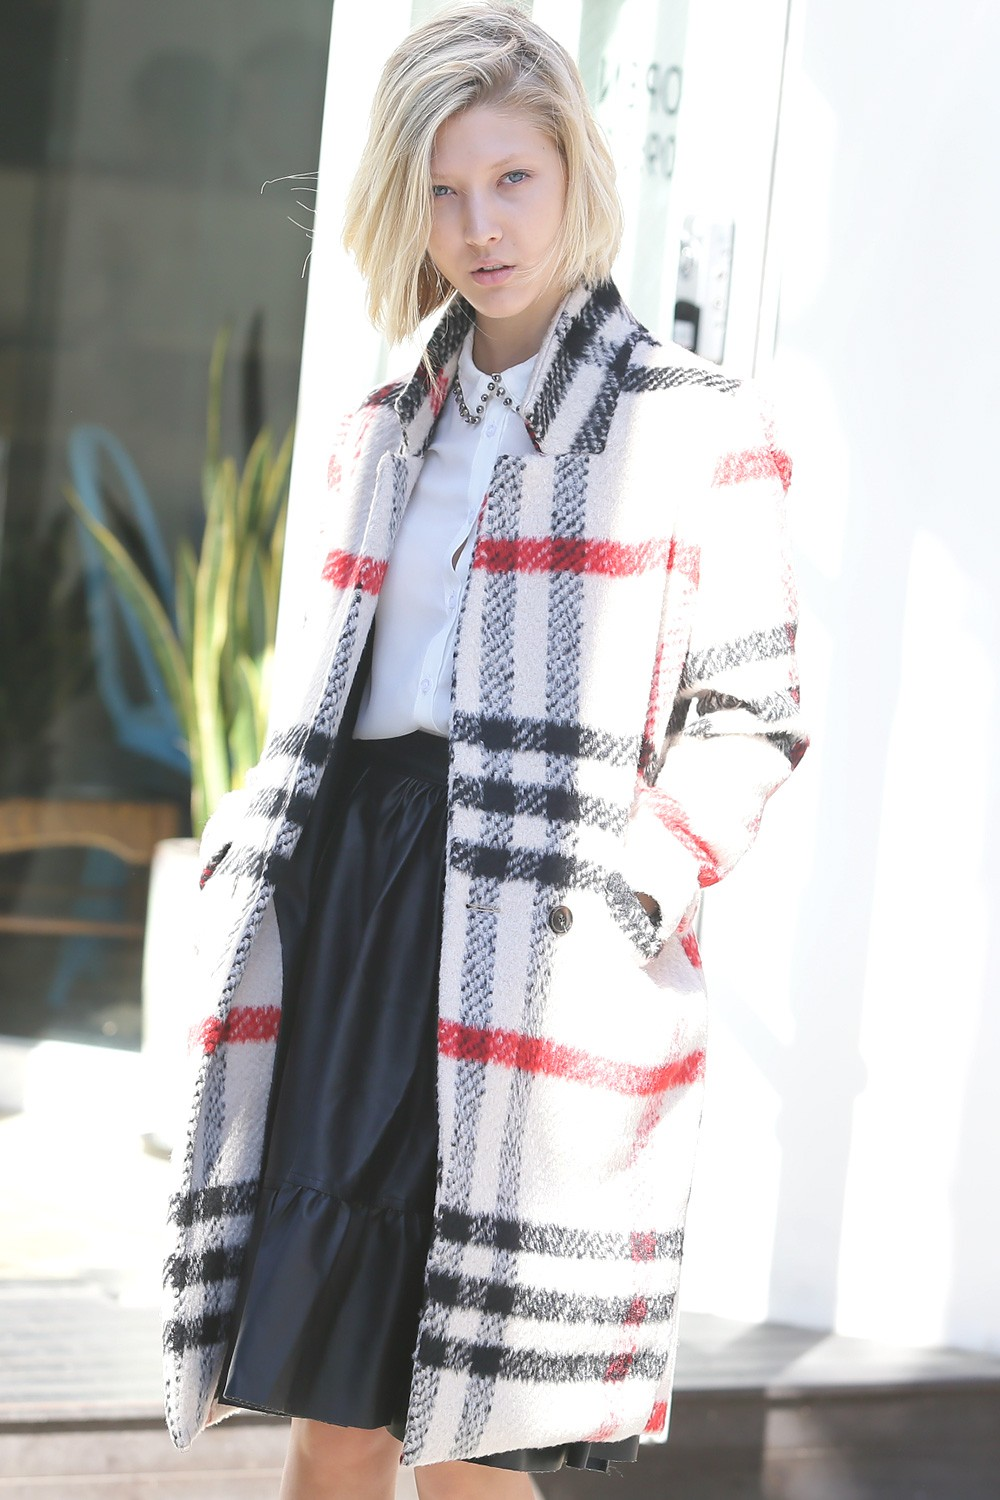 Fashion destination for sophisticated and playful fashionistas. mia oversize plaid woolen coat